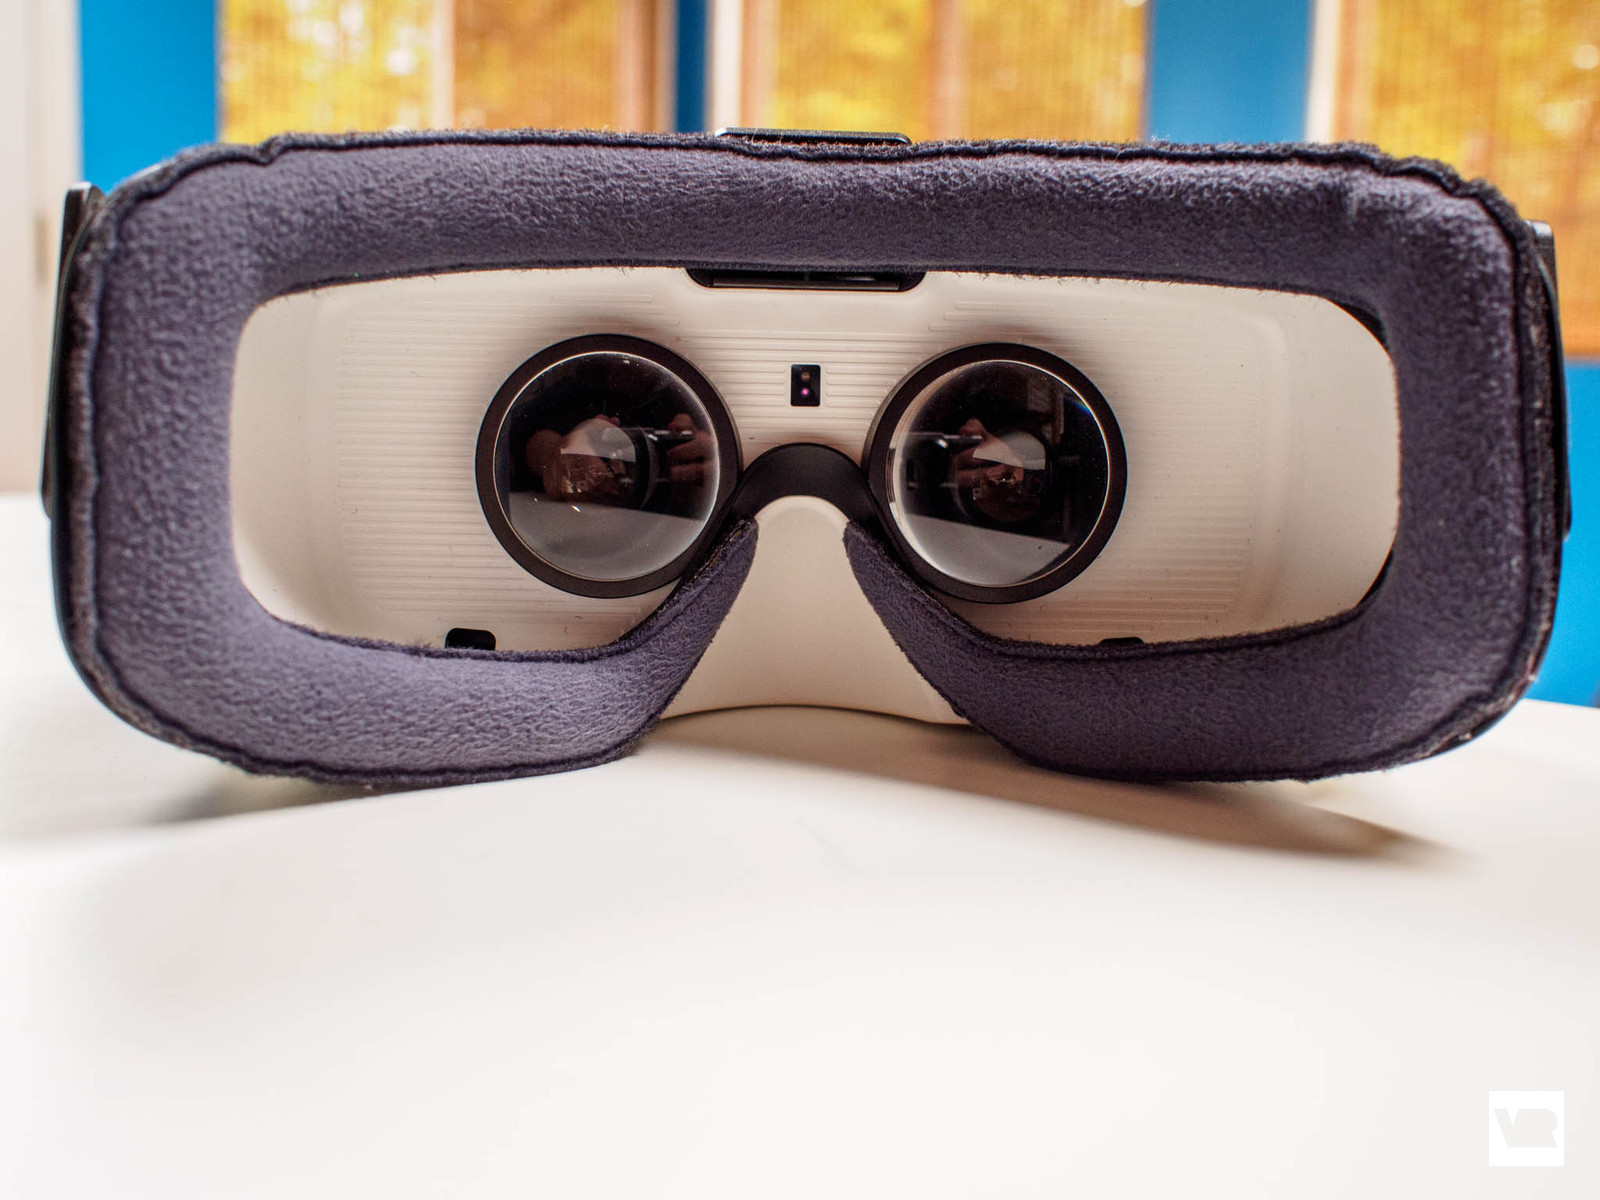 3D Porn No Glasses is watching porn in vr worth it? | vrheads